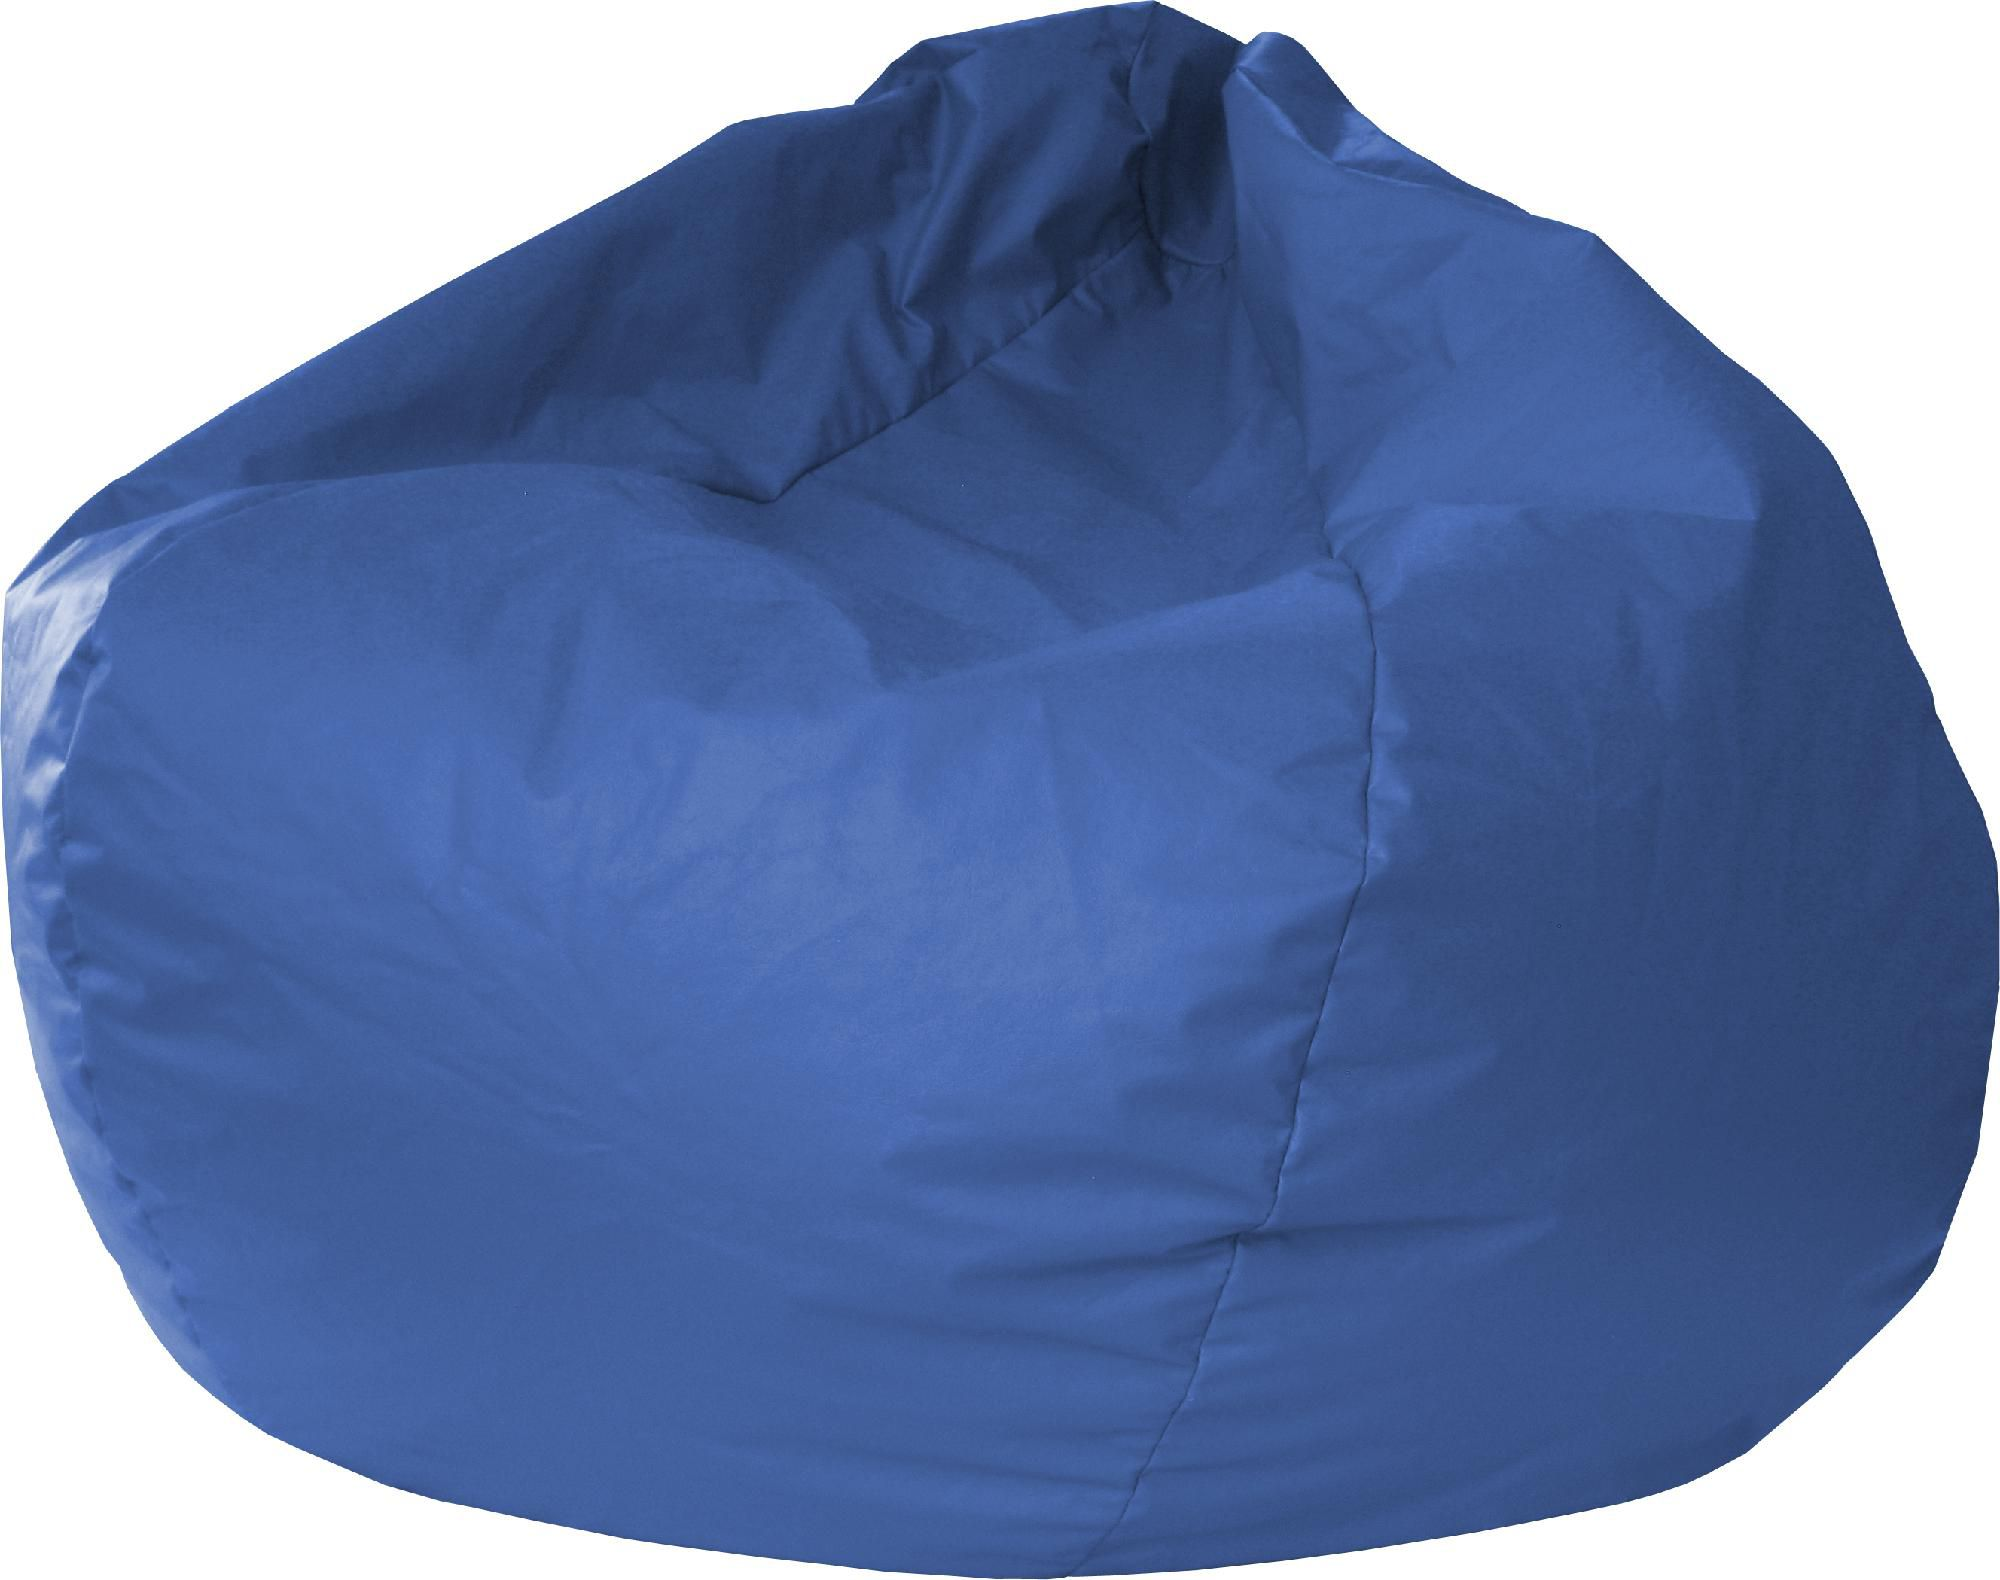 Vinyl Bean Bag Chairs Extra Large Leather Look Vinyl Bean Bag Bean Bags